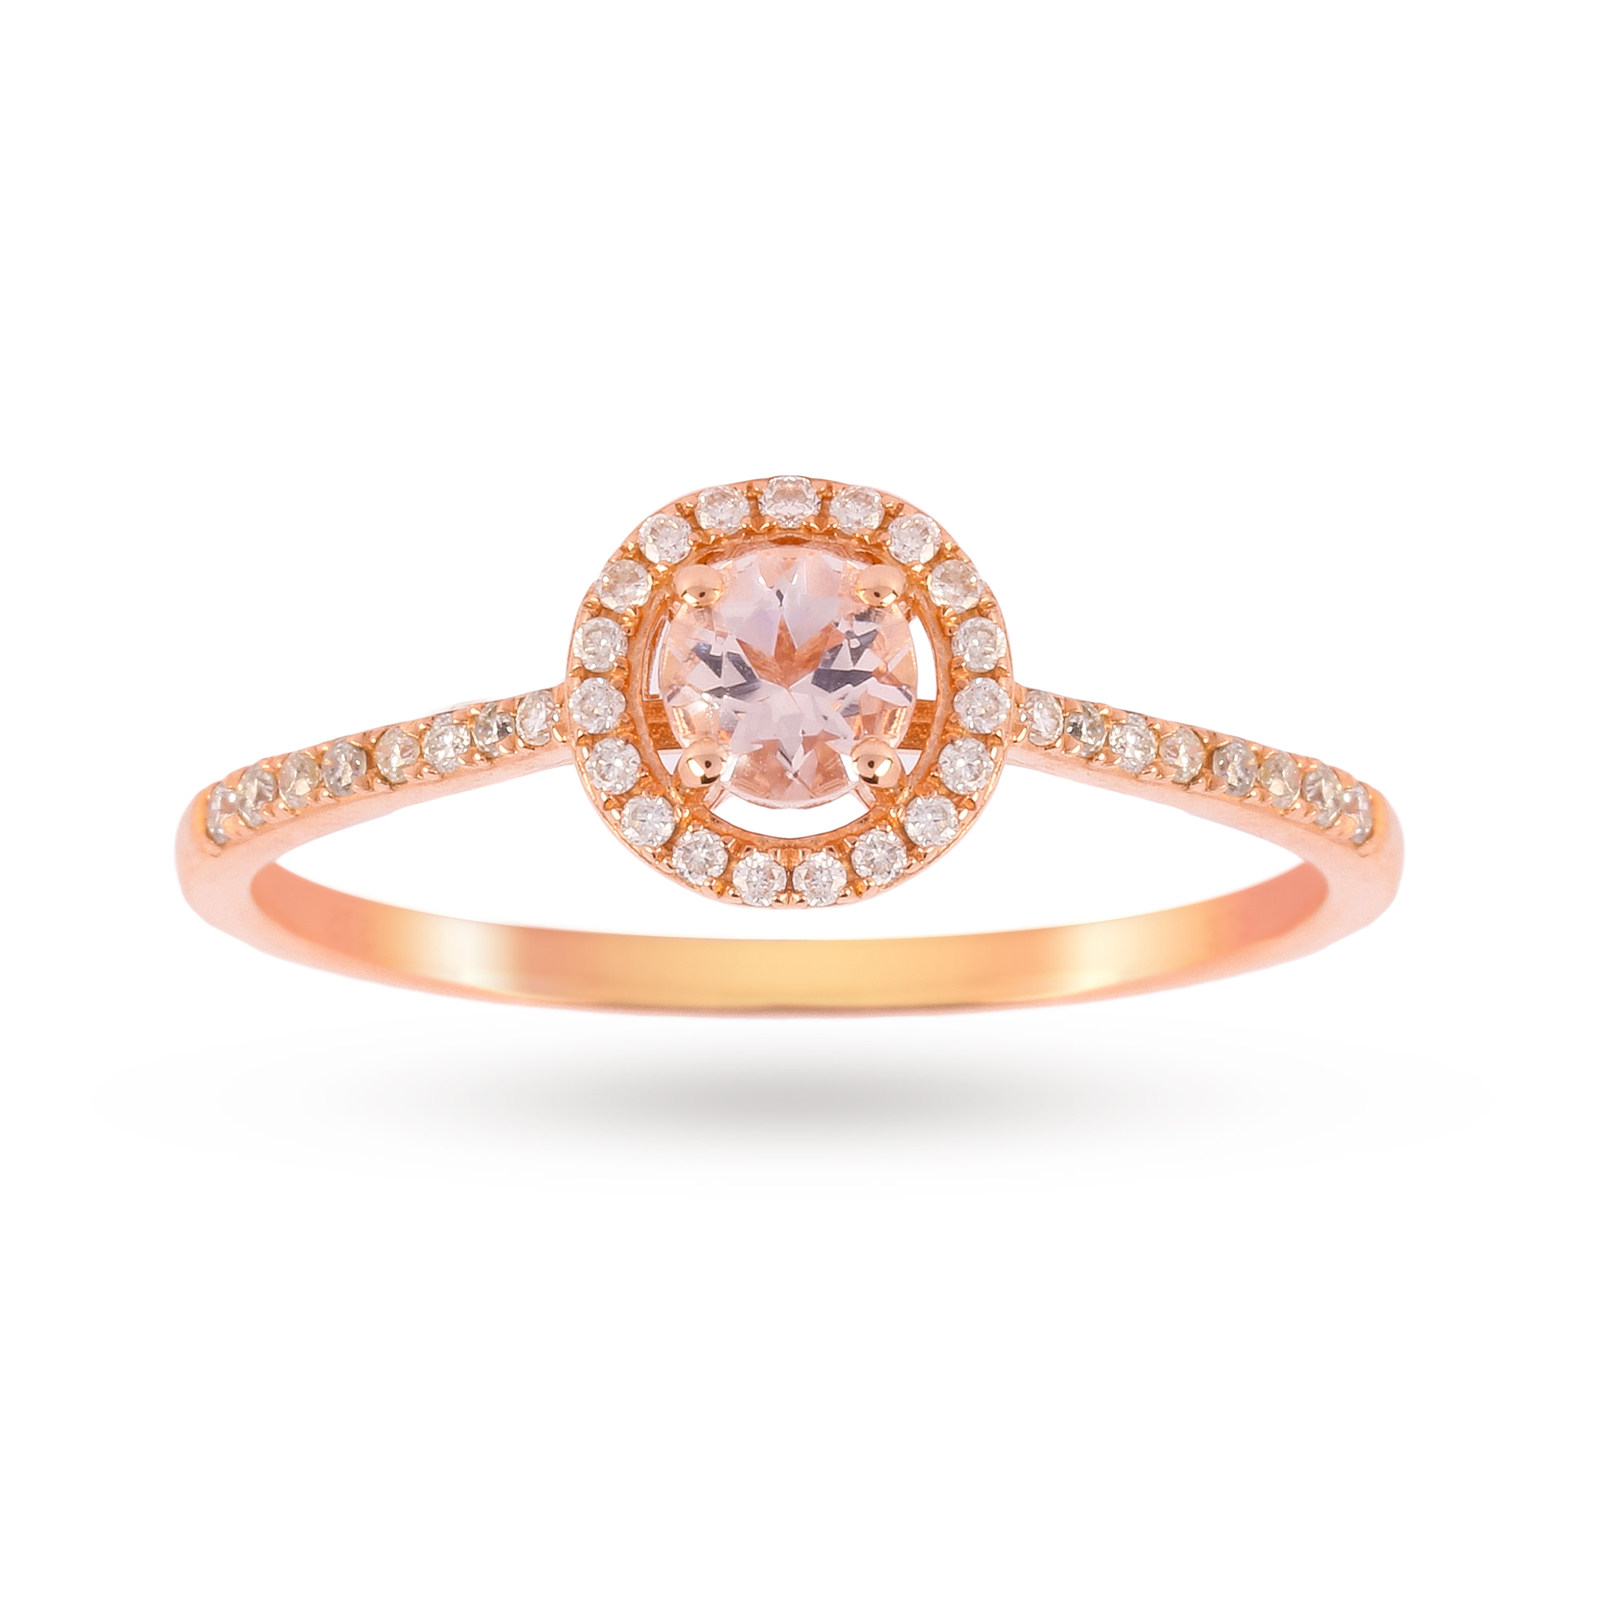 rings us gold lxrandco luxury large morganite diamond fr en ring estate jewelry pre vintage owned white